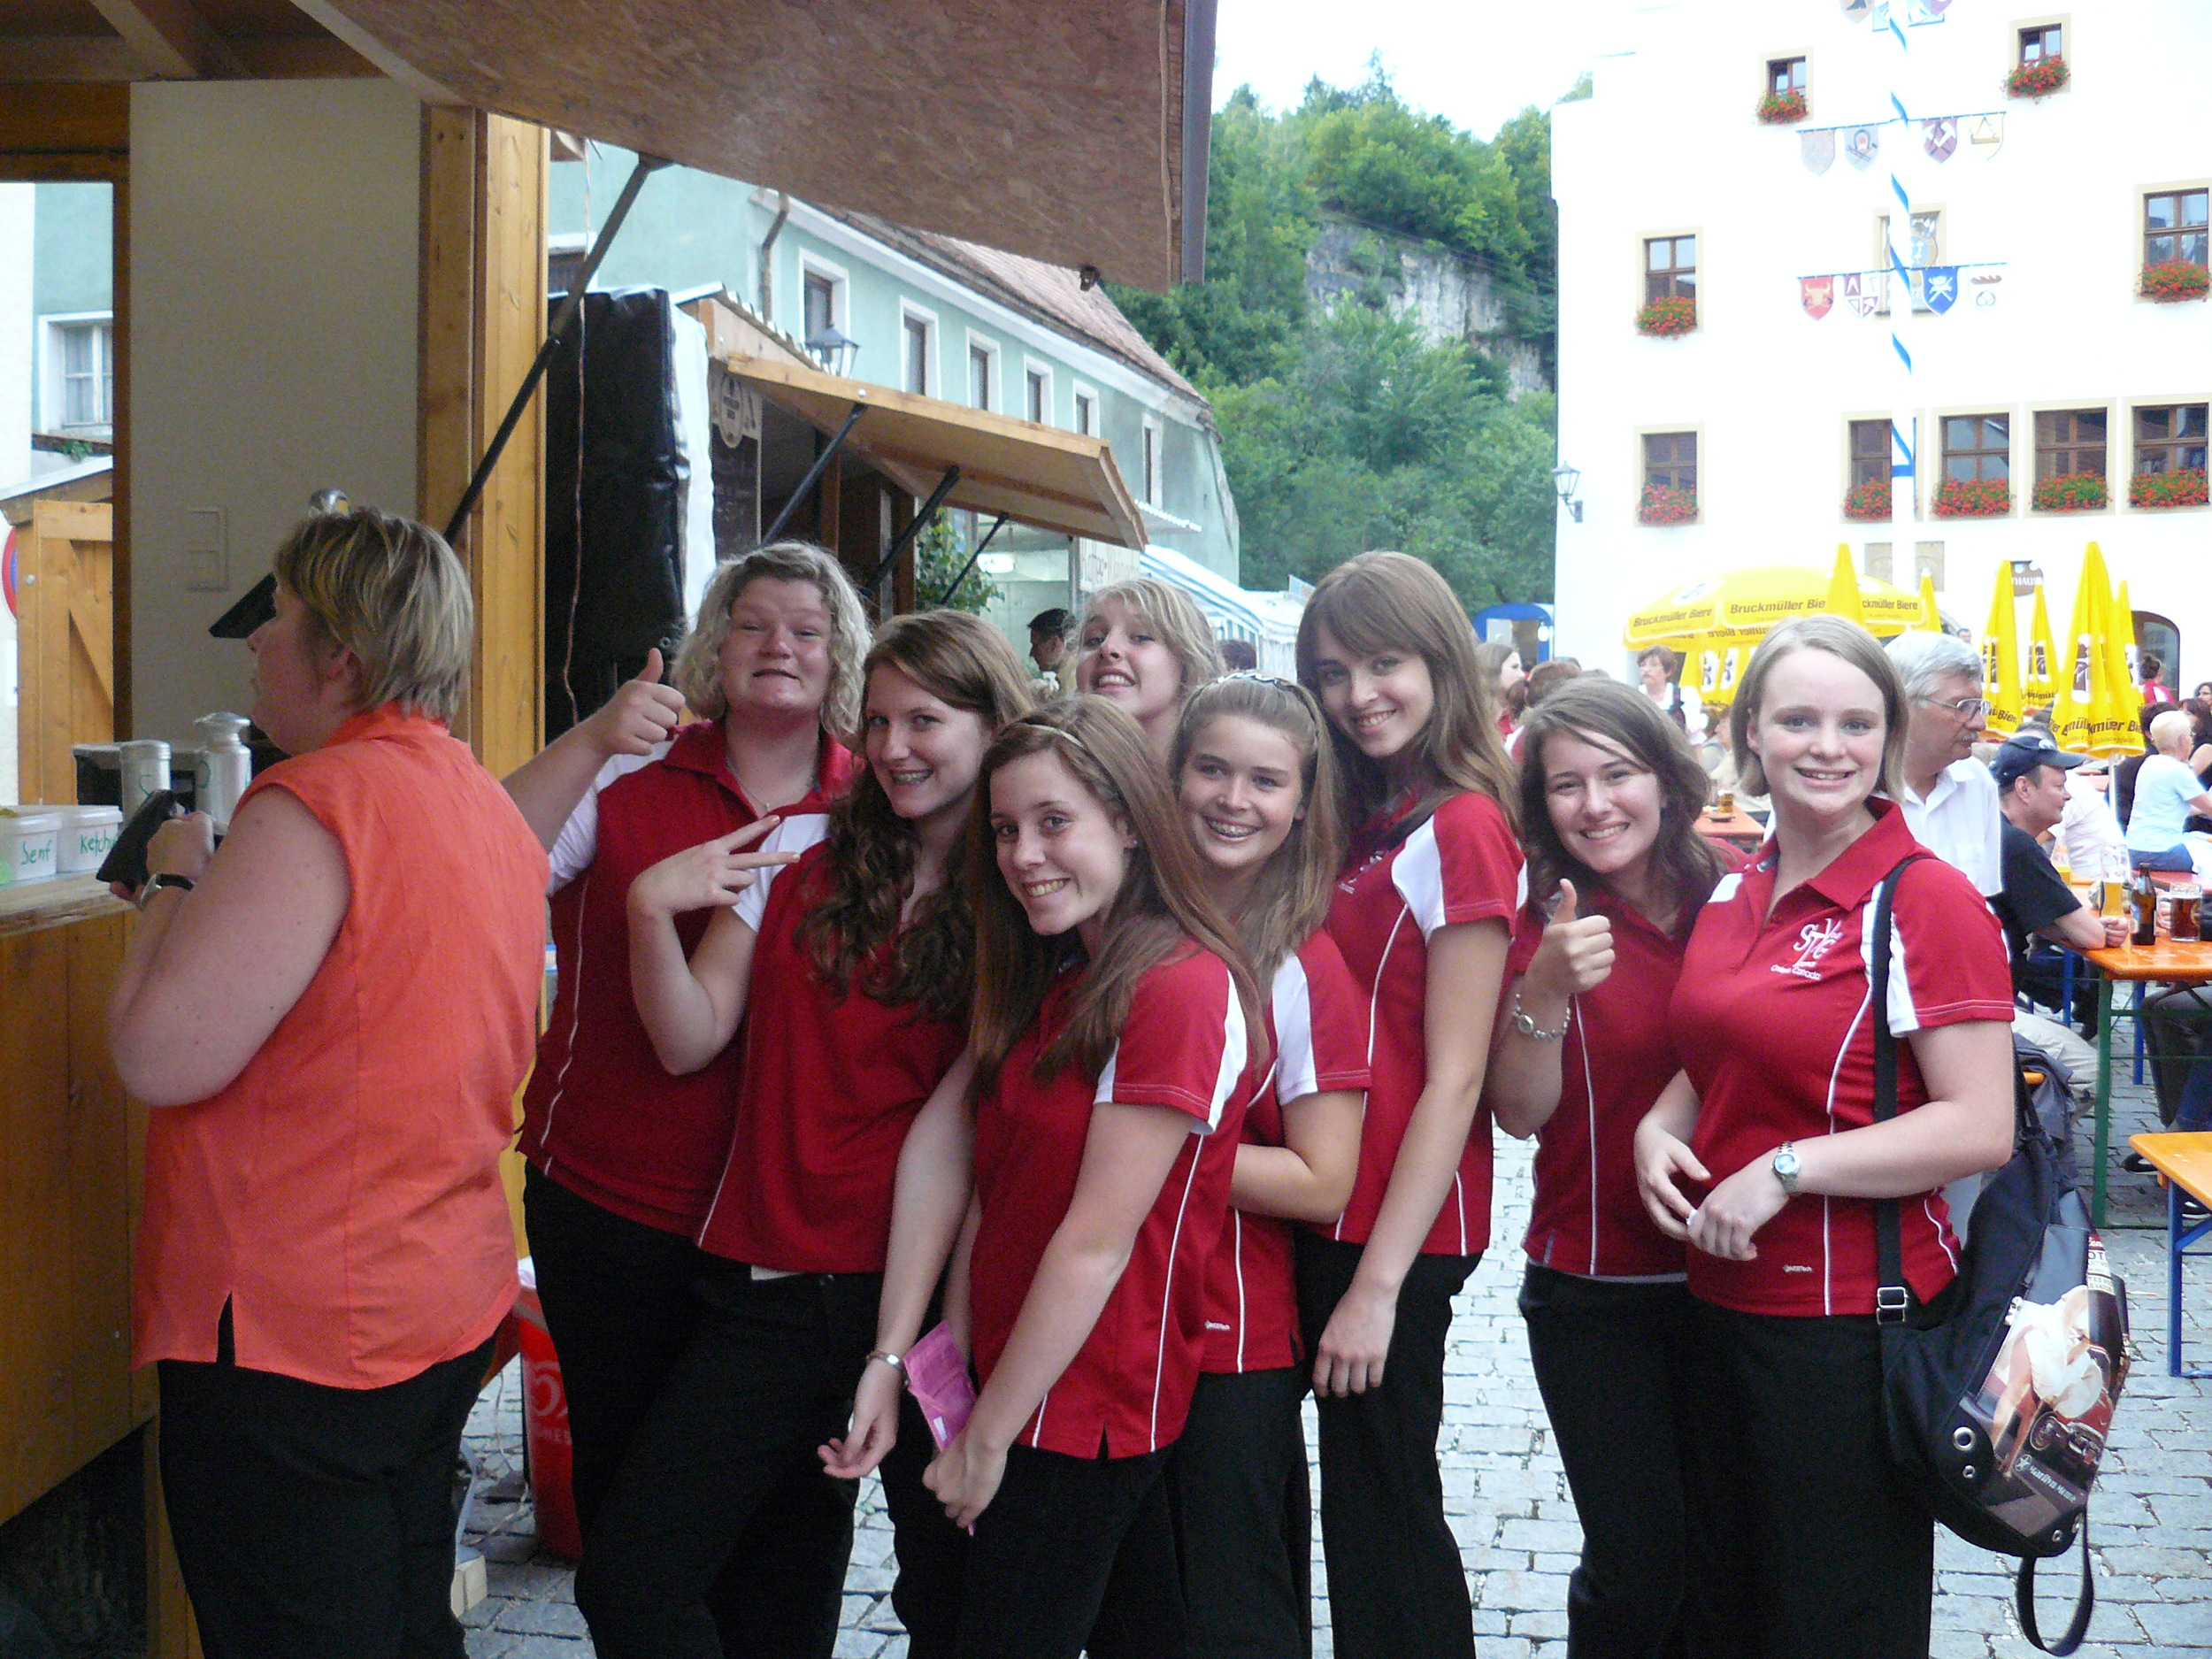 Waiting in line for German sausage before our performance in Amberg town square.